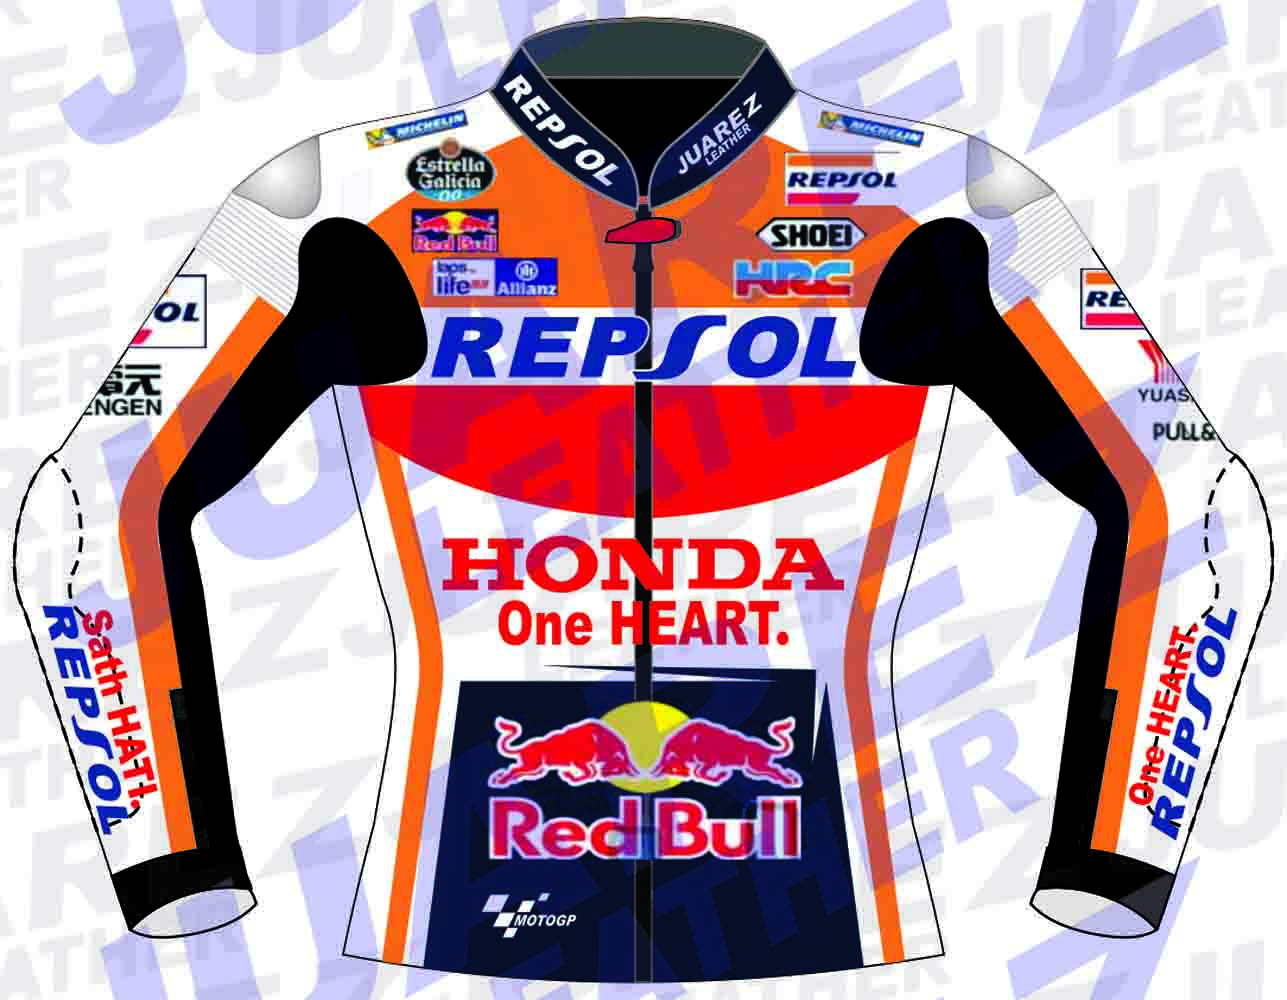 Red bull leather jacket